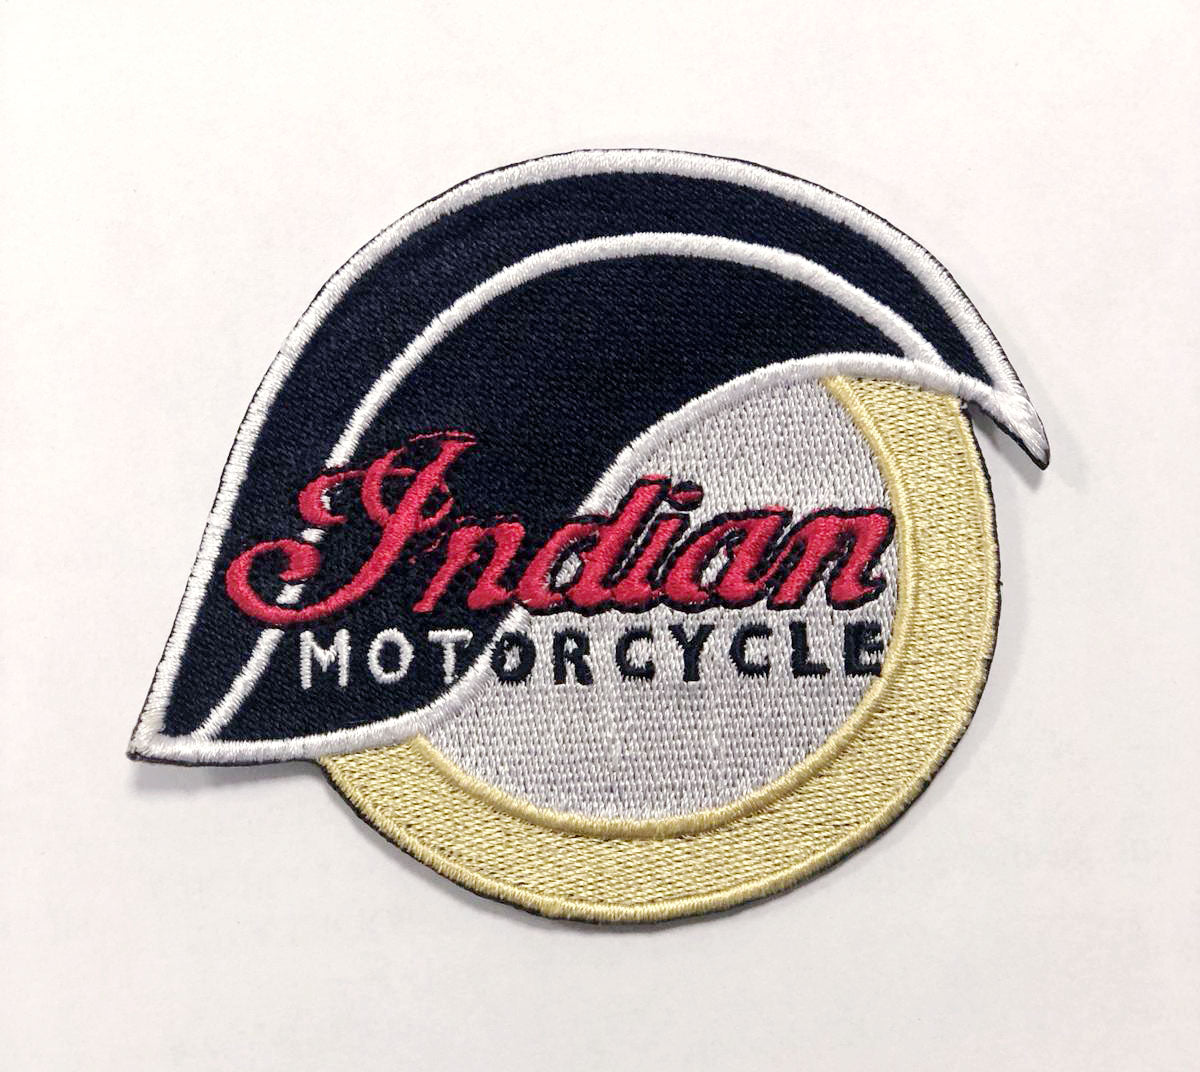 Indian Motorcycles 1901 Biker Racing Iron on Embroidered Patch